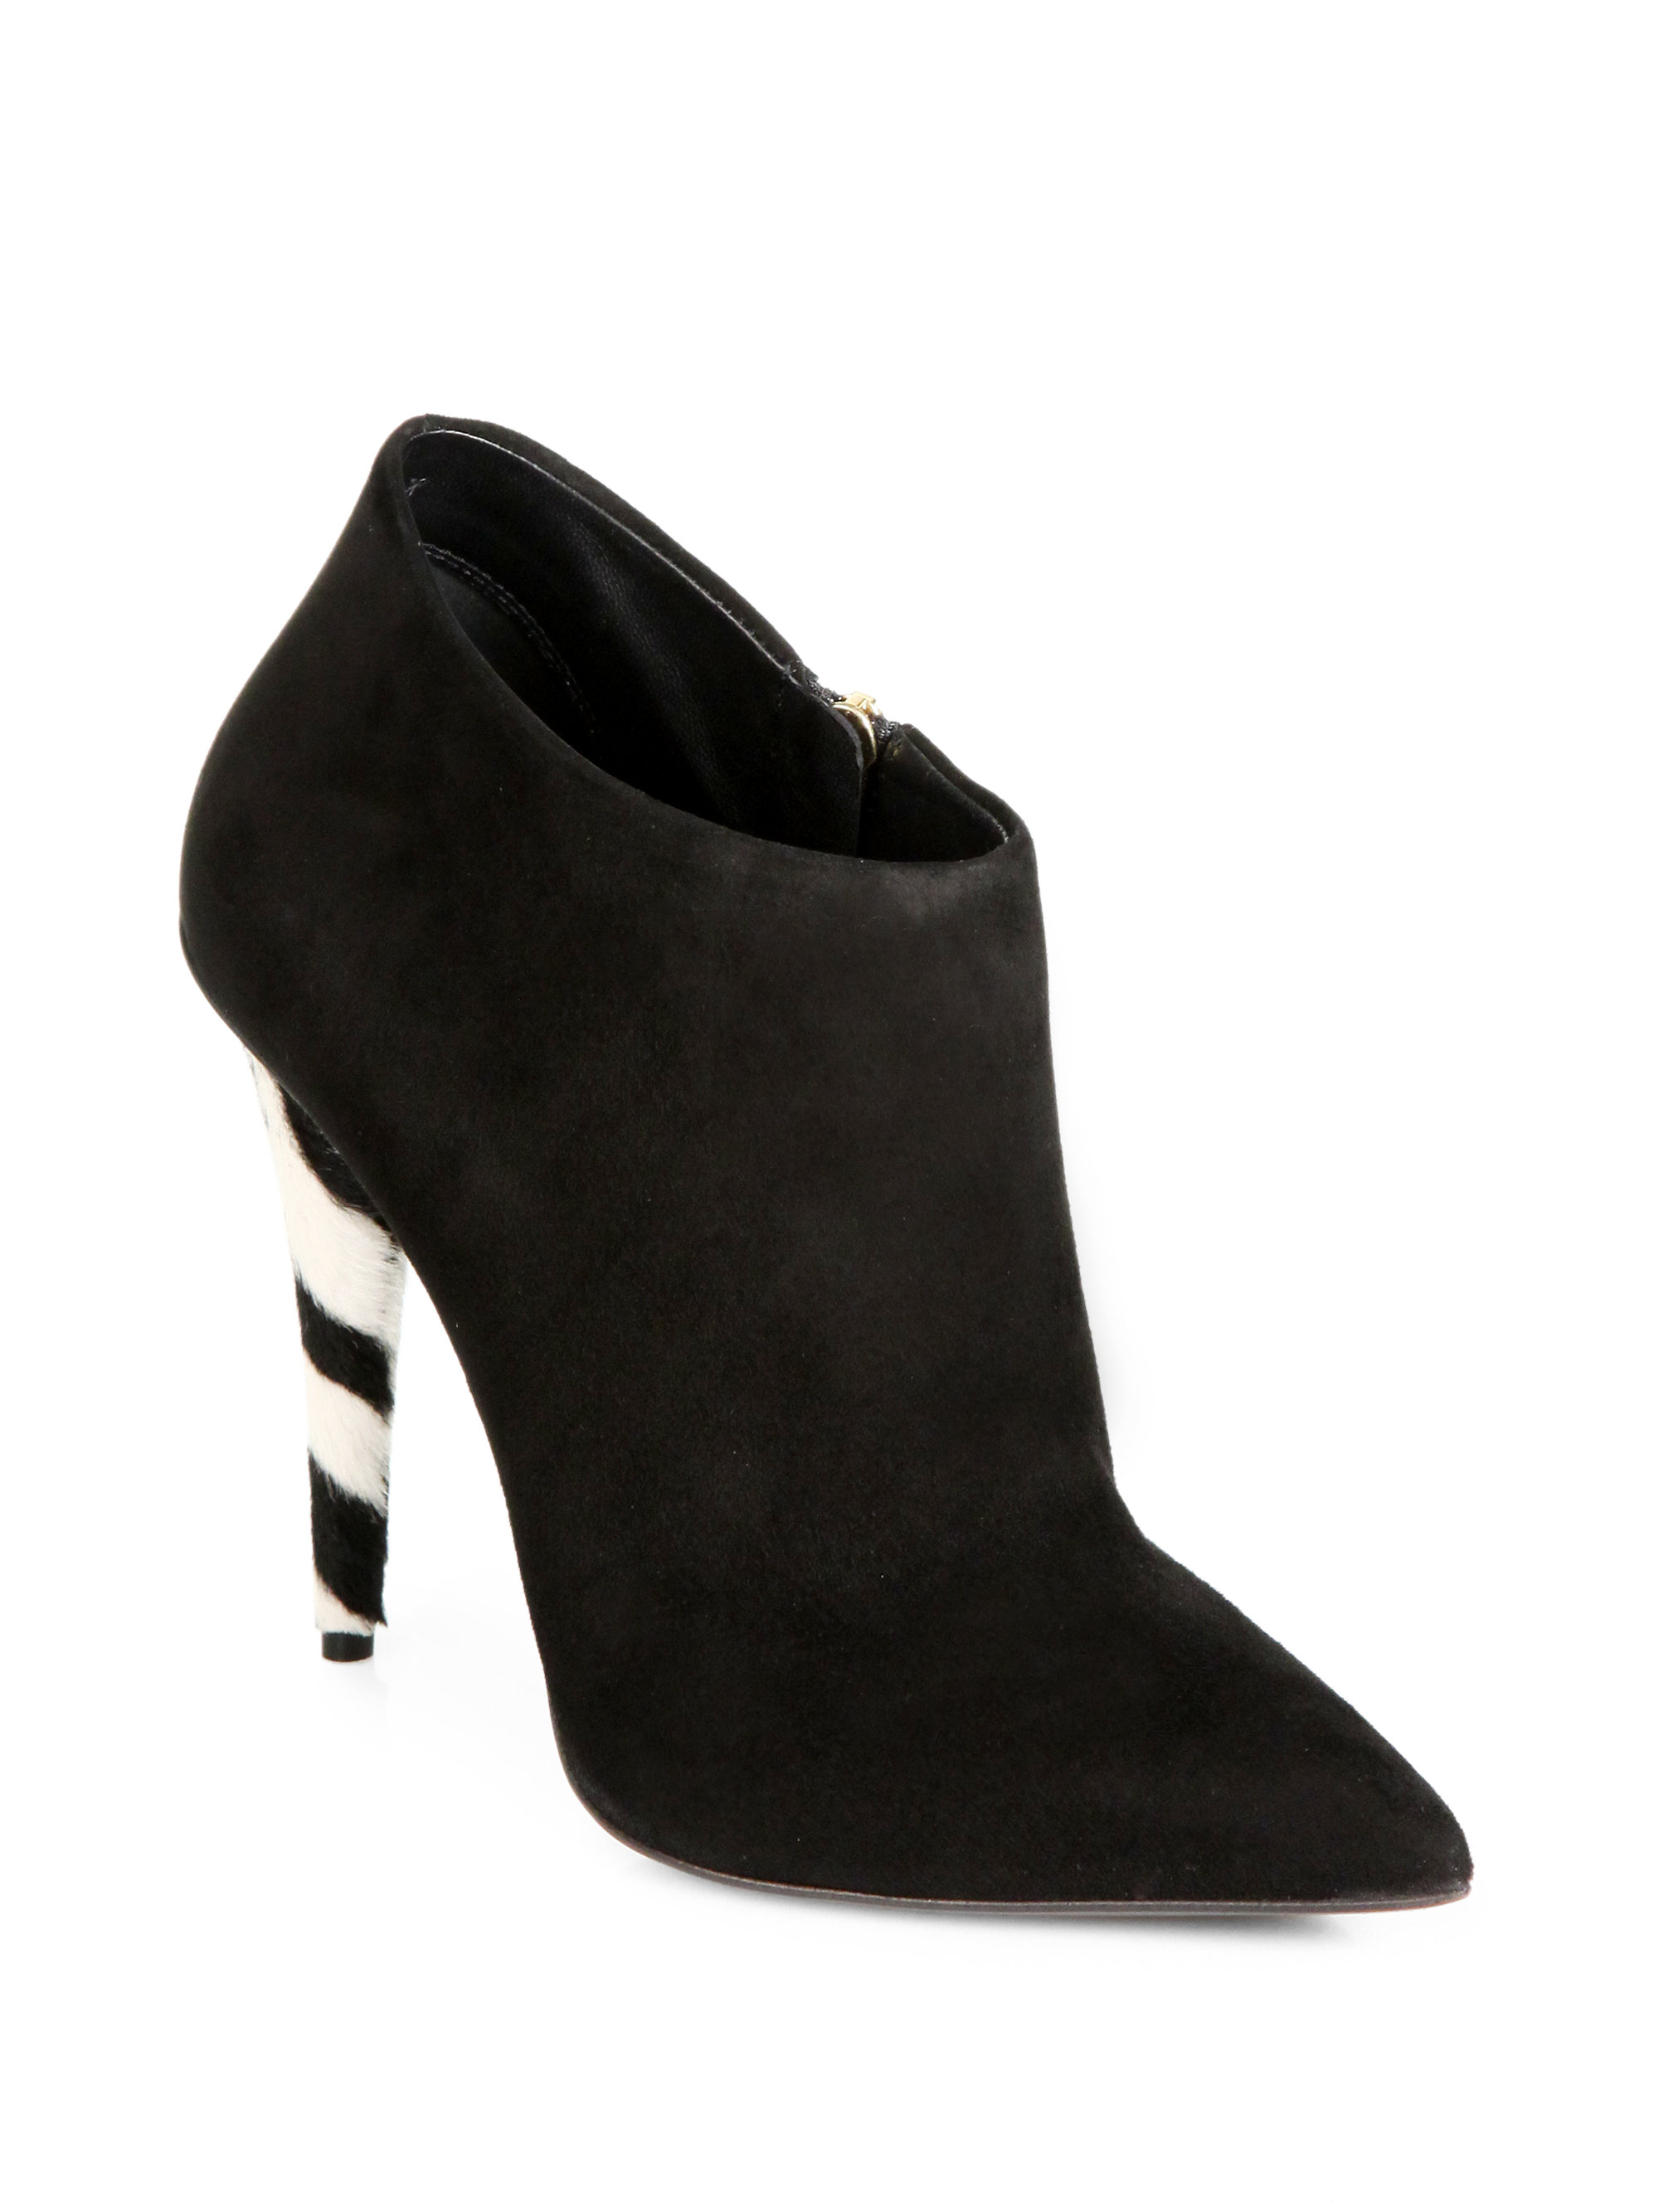 giuseppe zanotti suede zebra print calf hair ankle boots